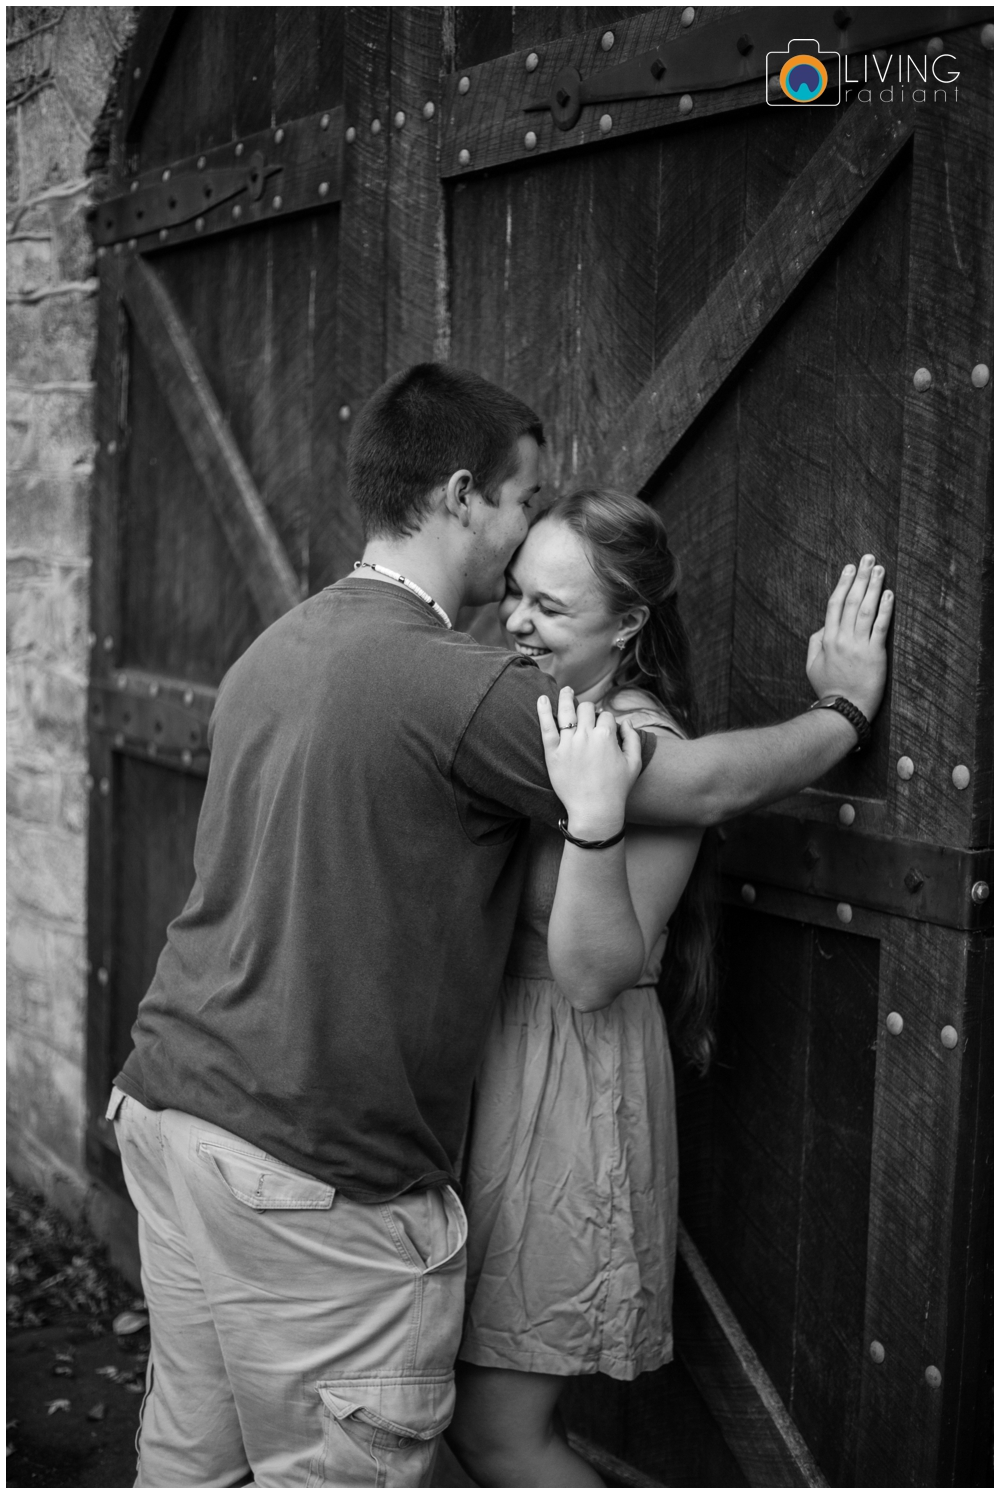 holley-ray-engaged-outdoor-engagement-session-woods-water-state-park-living-radiant-photography_0013.jpg